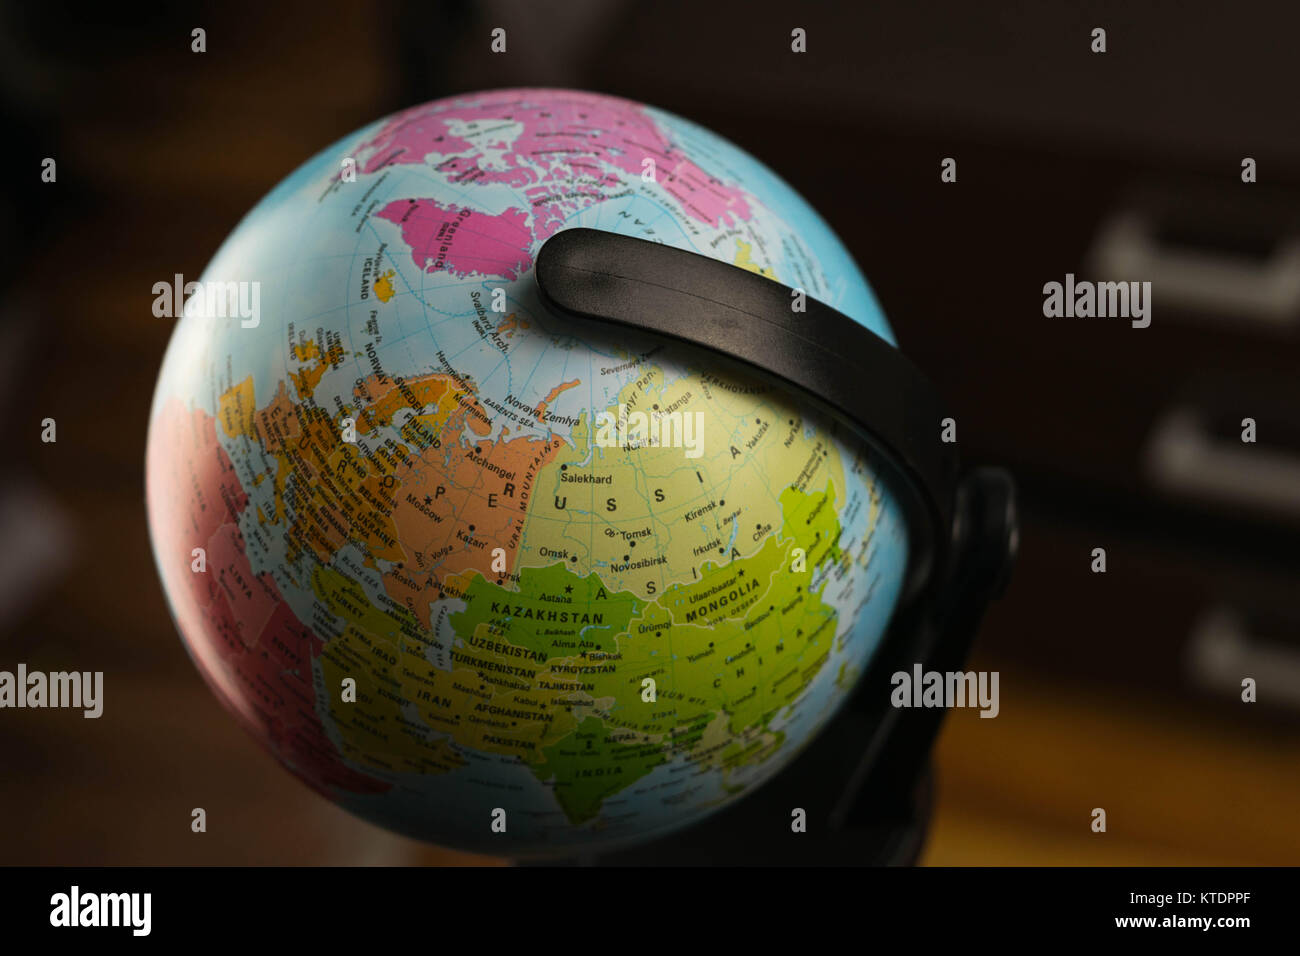 Earth globe map with focus on asia russia canada north pole earth globe map with focus on asia russia canada north pole gumiabroncs Images